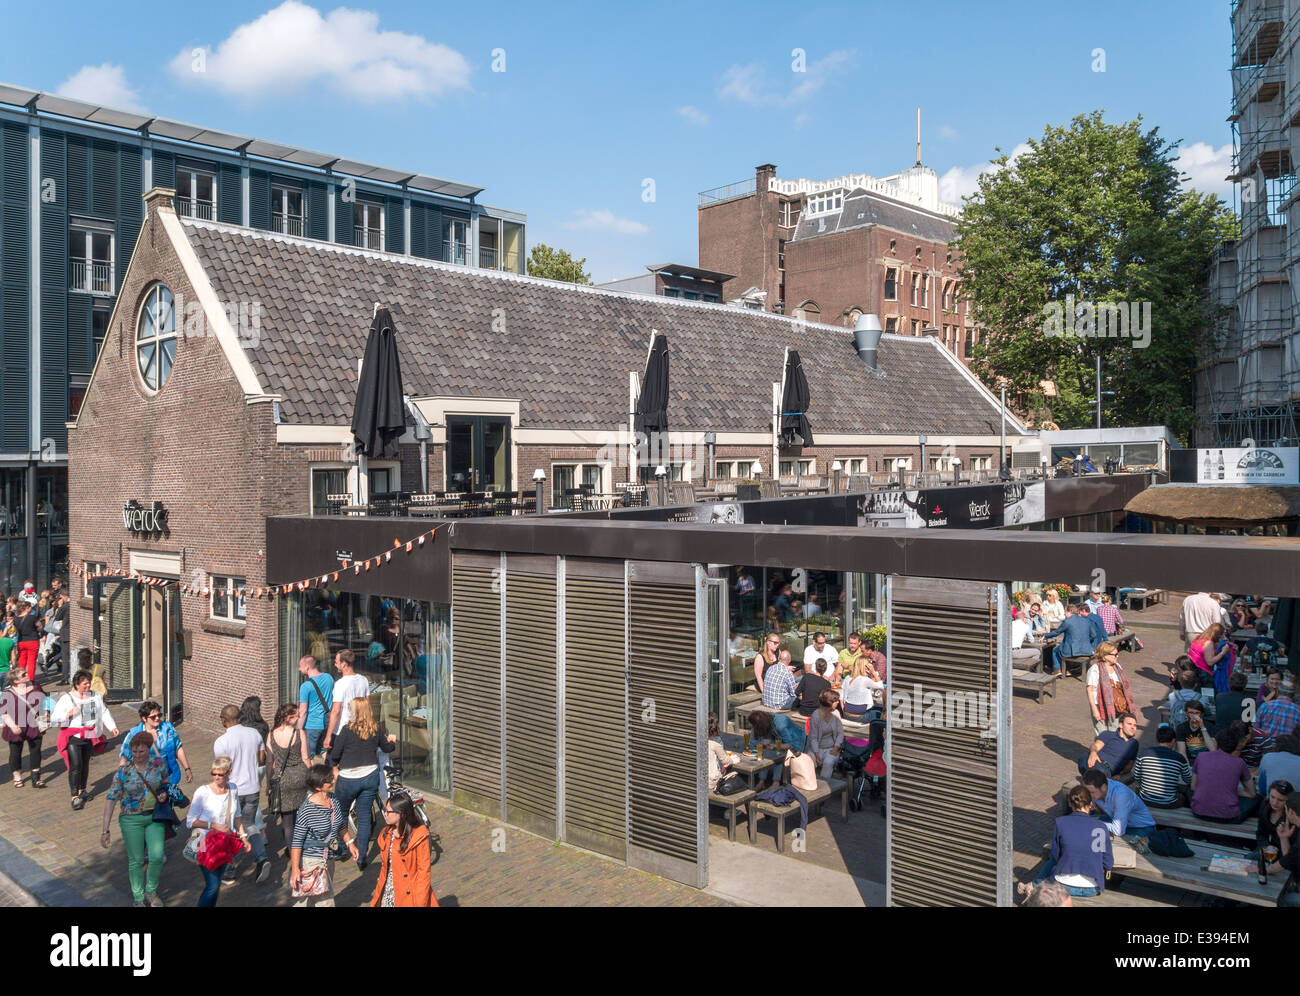 Amsterdam restaurant Werck on the Prinsengracht canal with outside seating area. - Stock Image